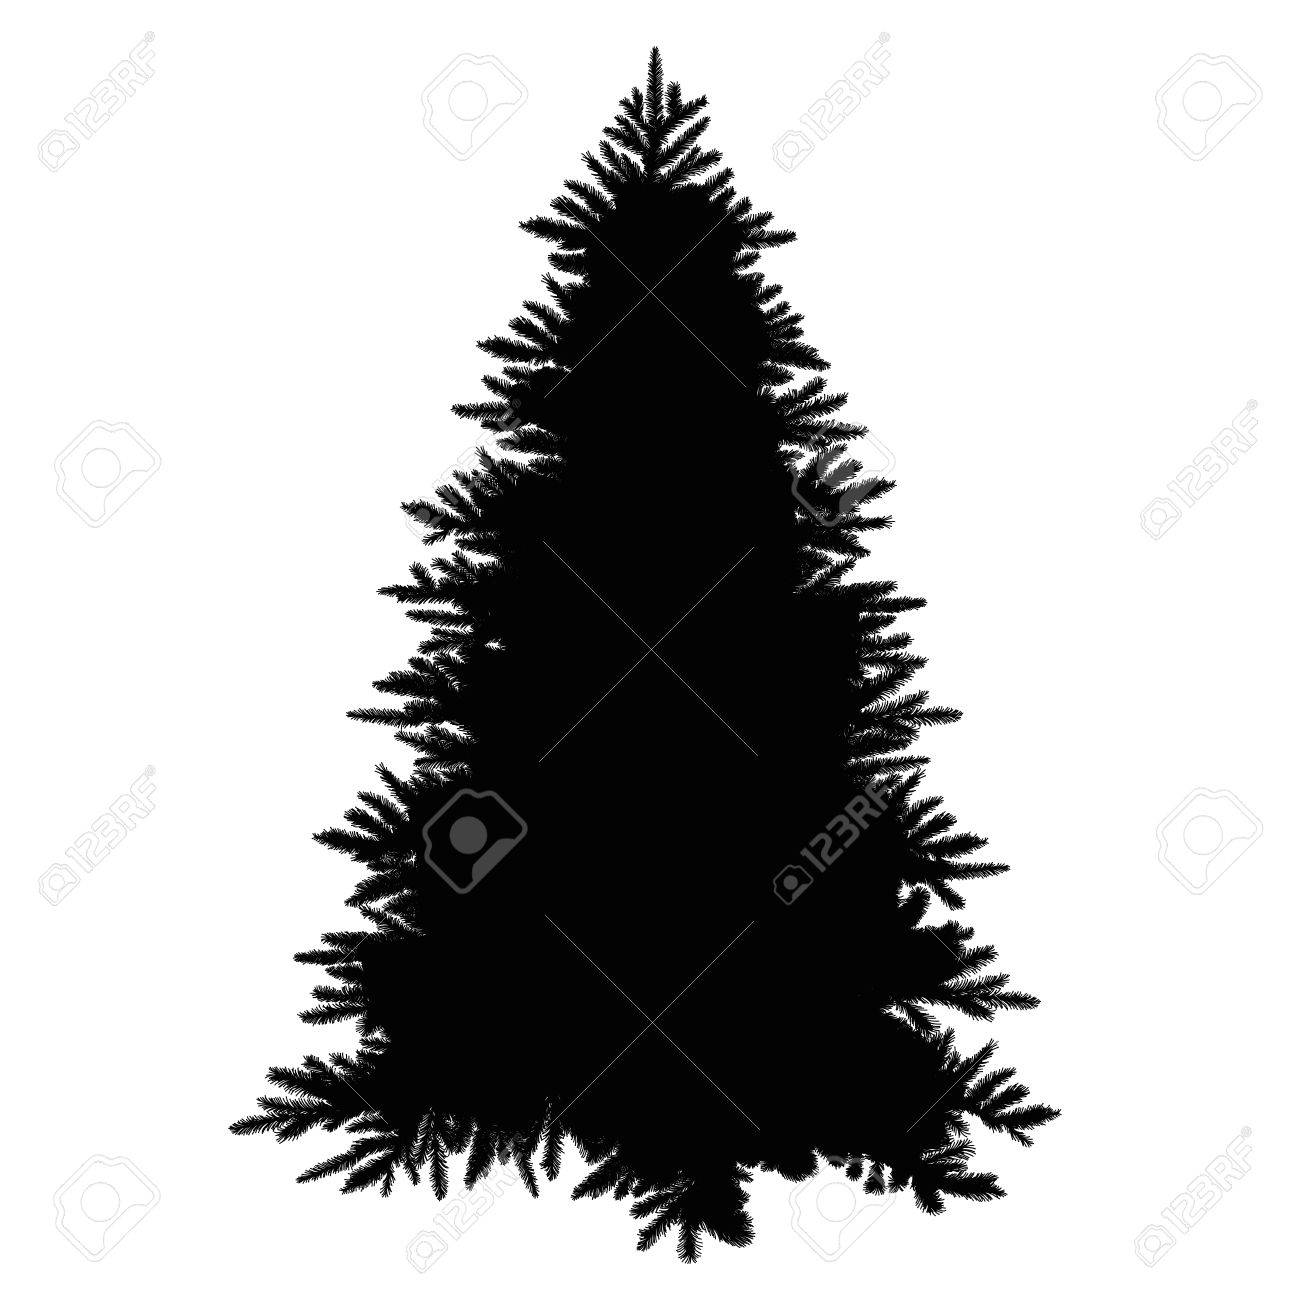 Christmas Tree Illustration.Christmas Tree Silhouette